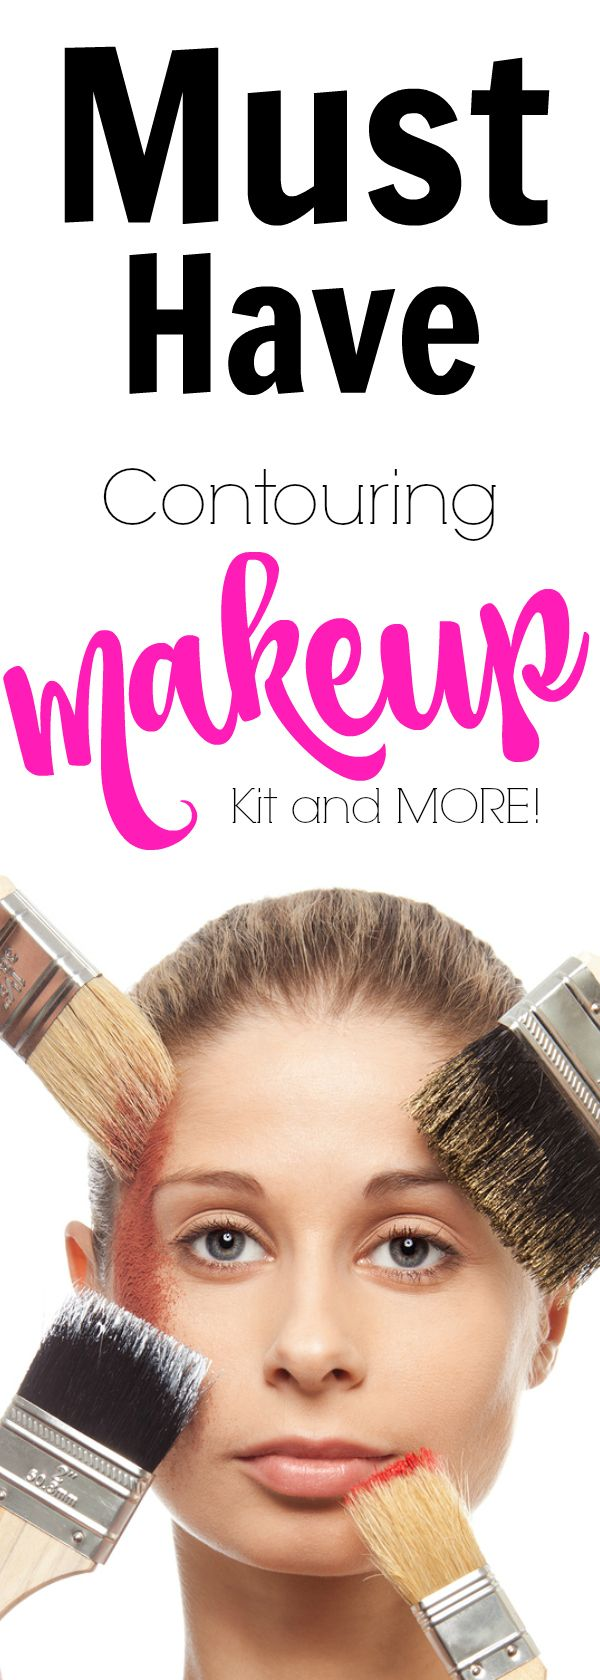 Must have contouring makeup kit and other organic and chemical free makeup by barbies beauty bits